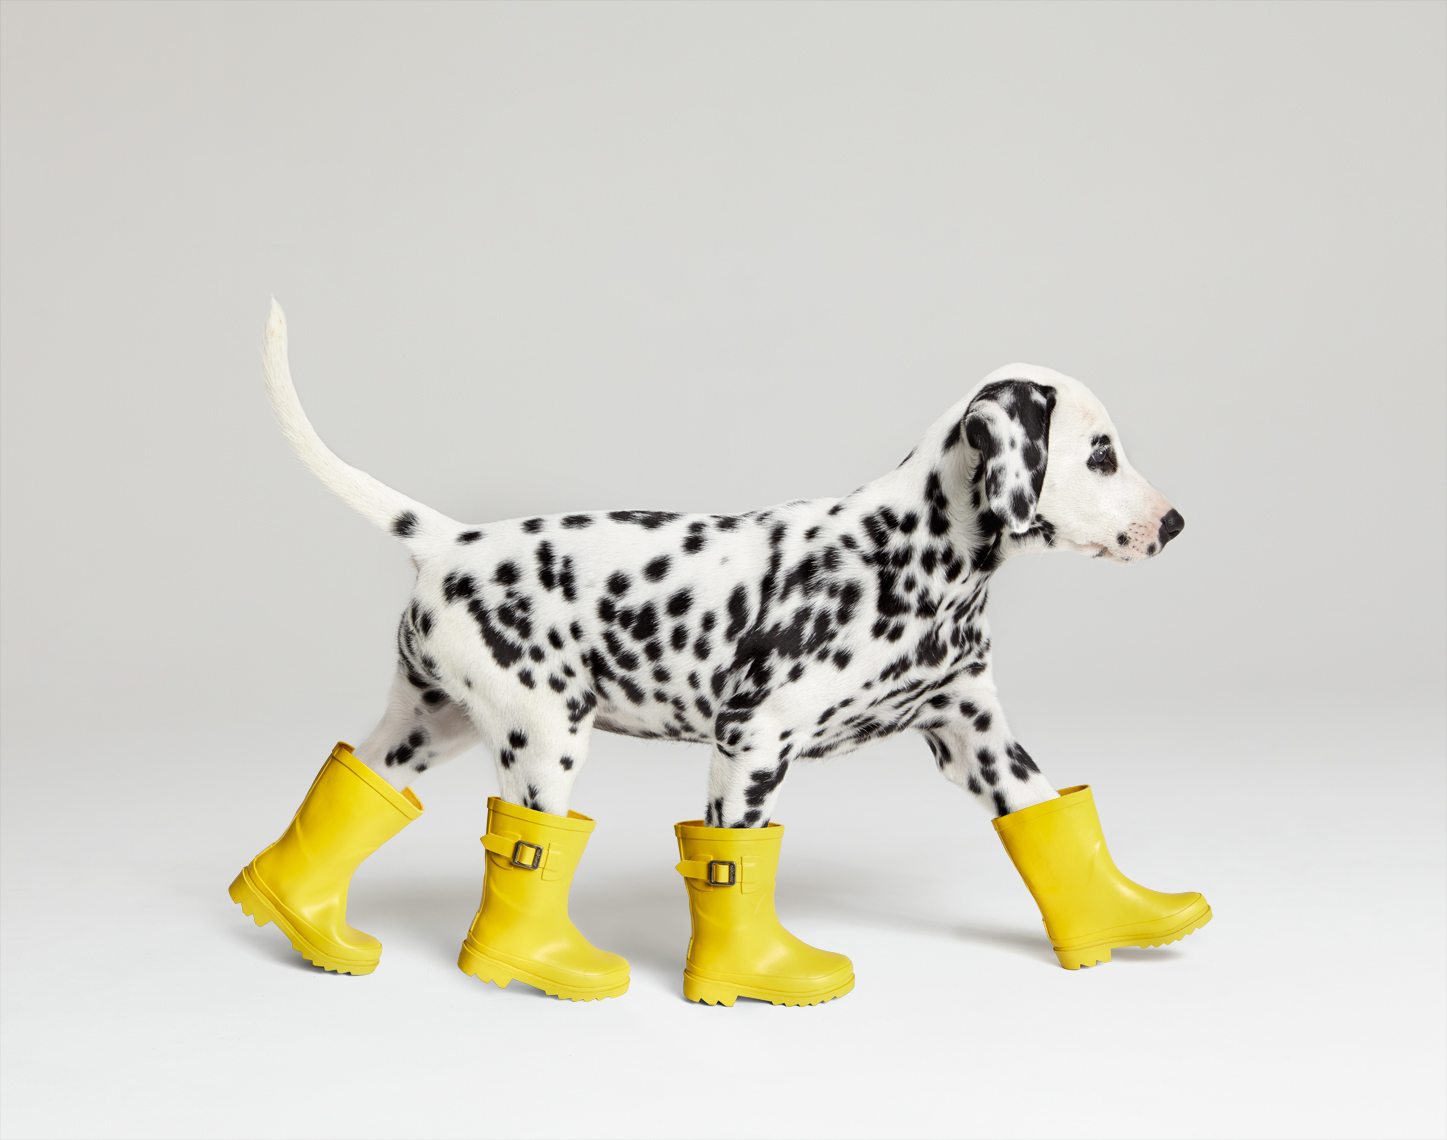 Dalamtian with yellow rain boots